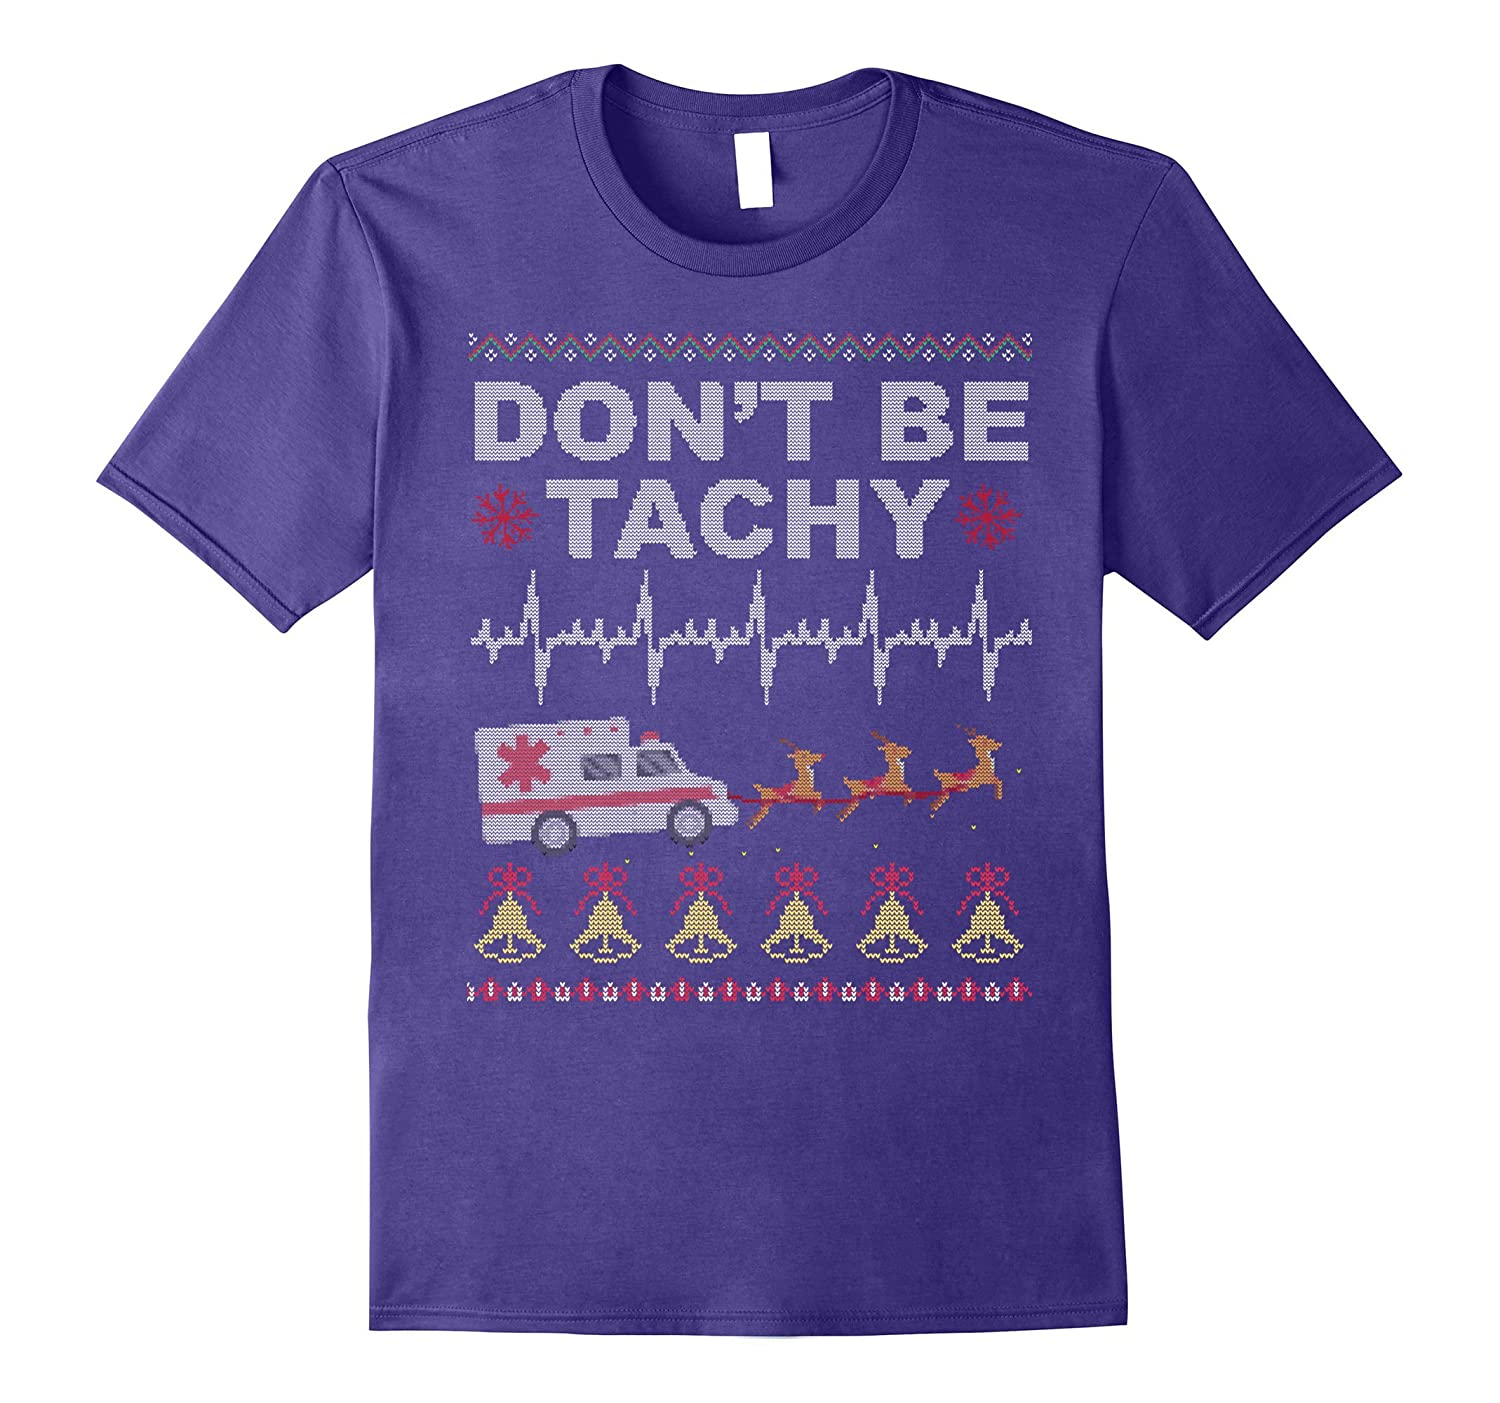 Don't Be Tachy Ugly XMAS T-Shirt Gift for Nurses and Medical-ANZ